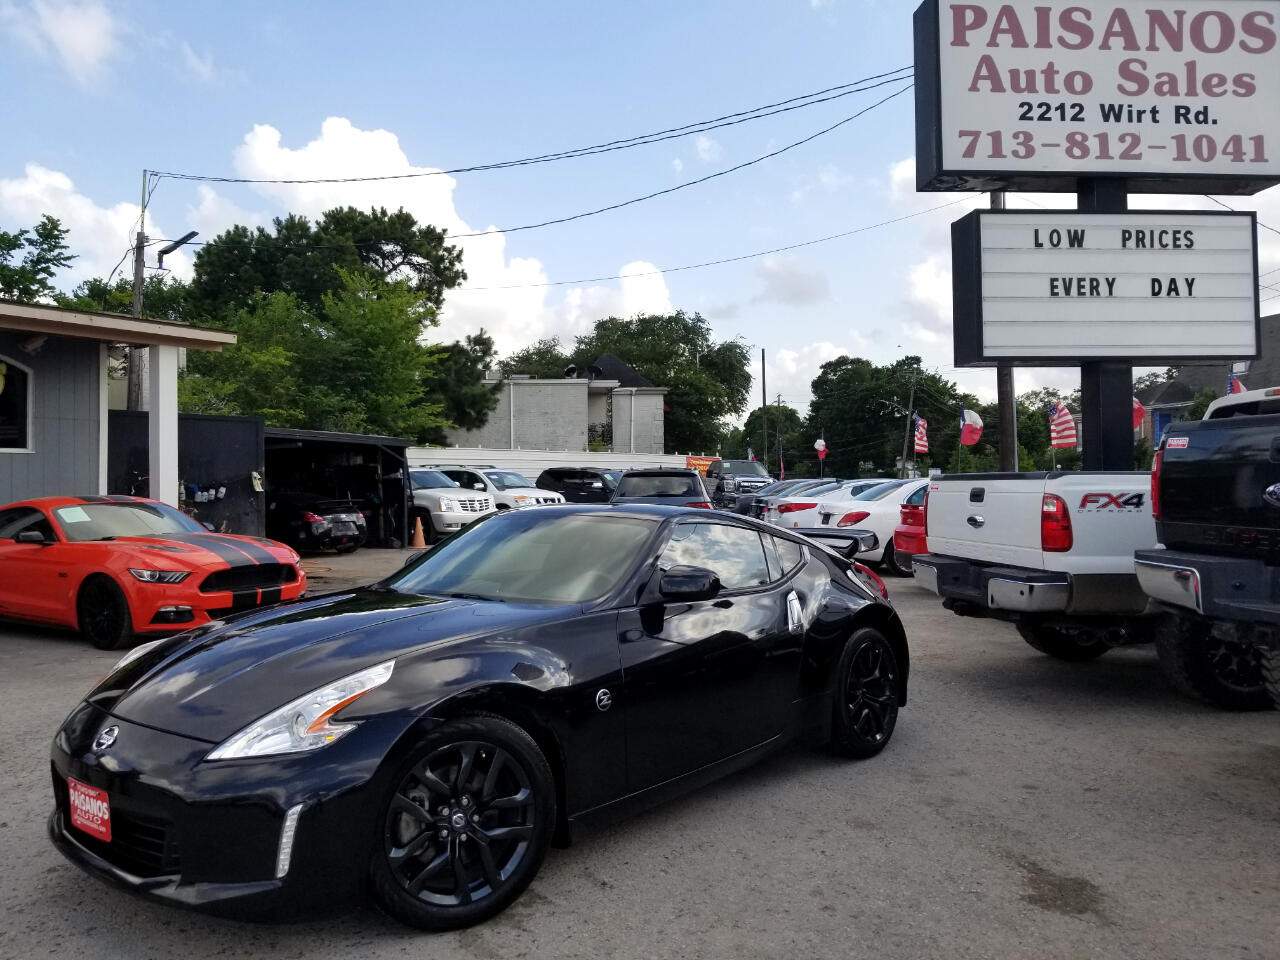 Nissan Z 370Z Coupe Touring 6MT 2015